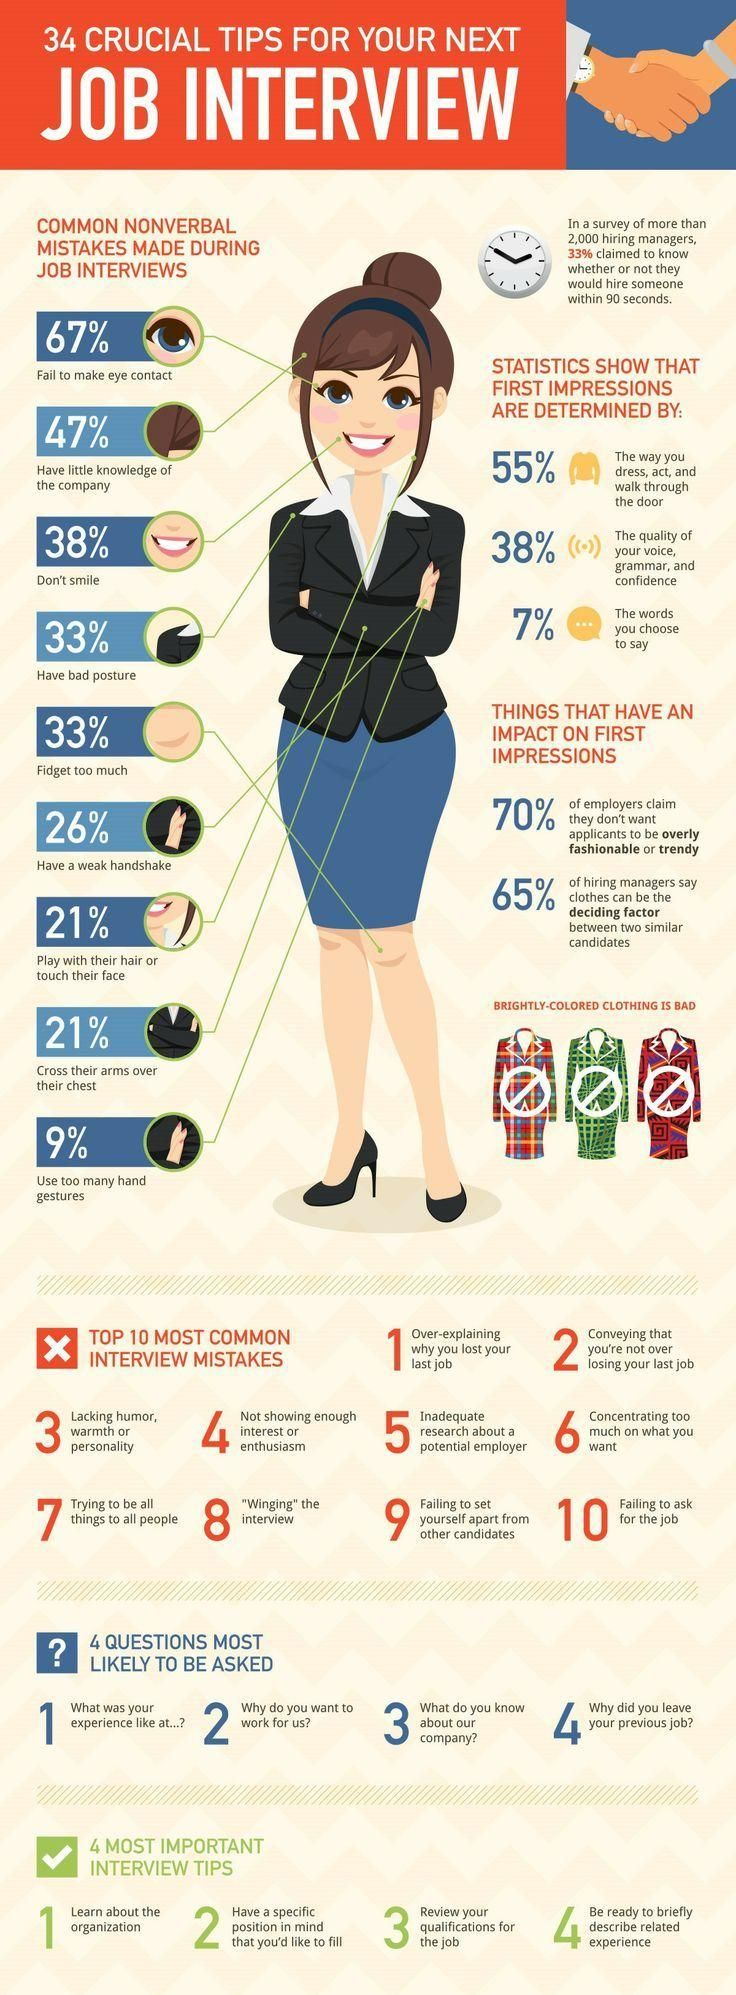 34 Crucial Tips for your next job interview